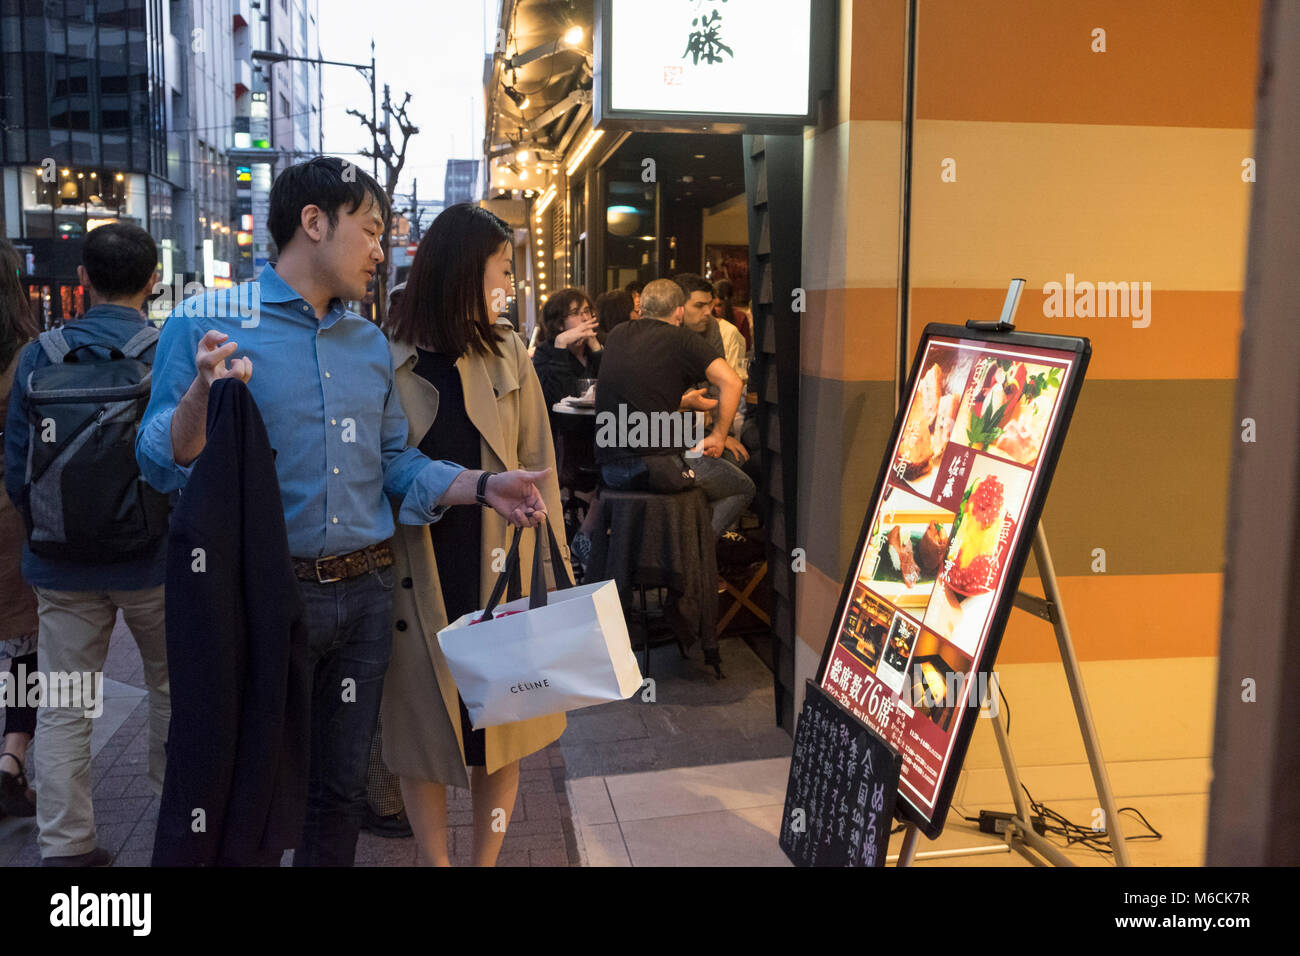 Couple walking check a restaurant menu in Ginza, Tokyo, Japan - Stock Image